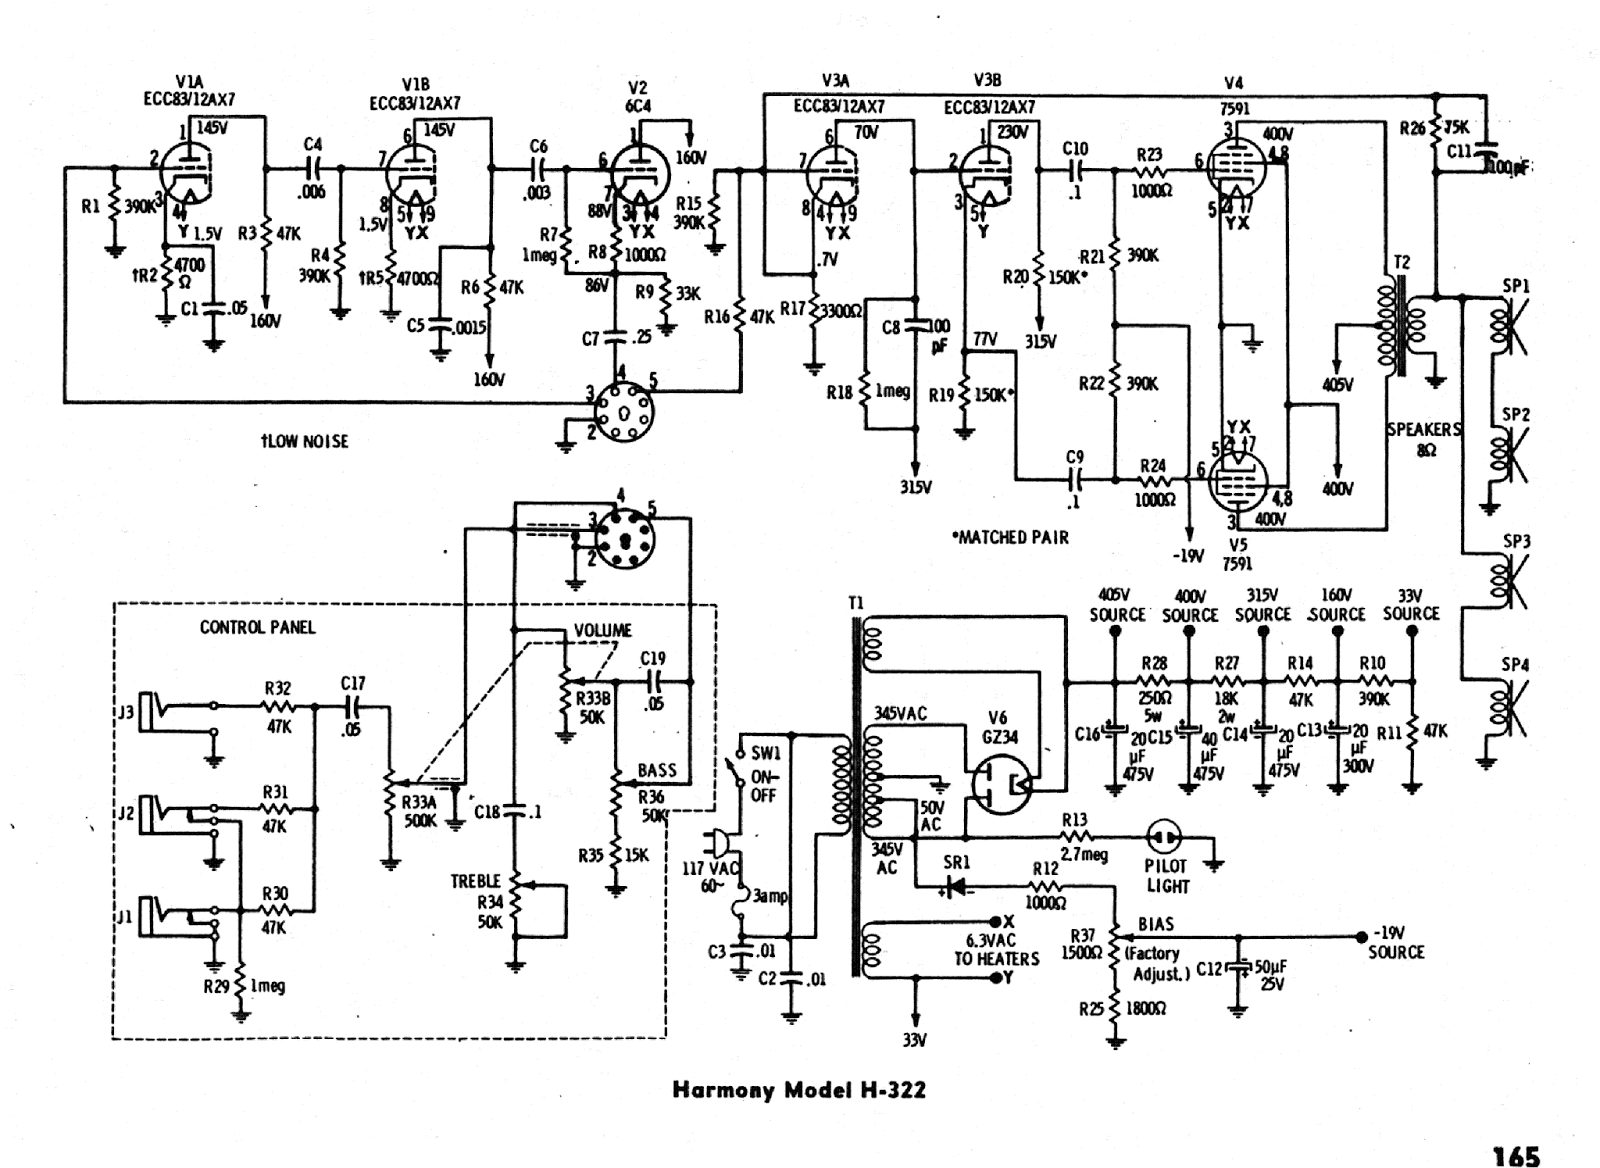 Harmony Amp Schematic - Wiring Diagram Srconds on